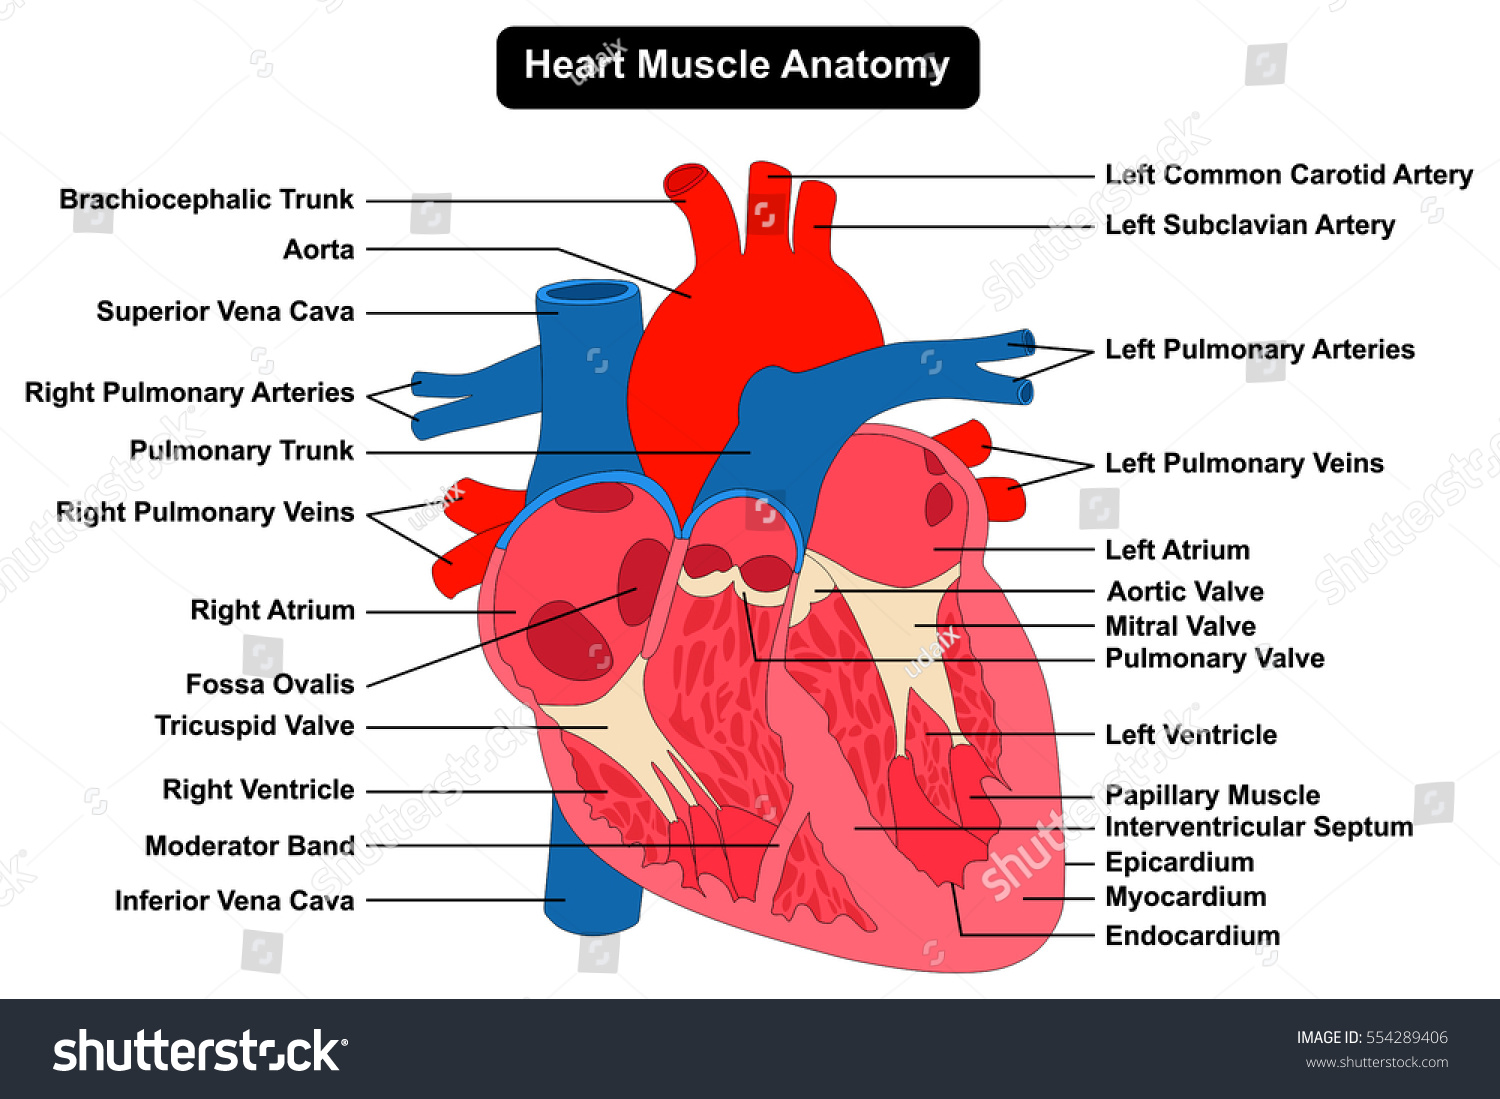 cardiac muscle labeled diagram speaker ohm wiring human heart structure anatomy infographic stock